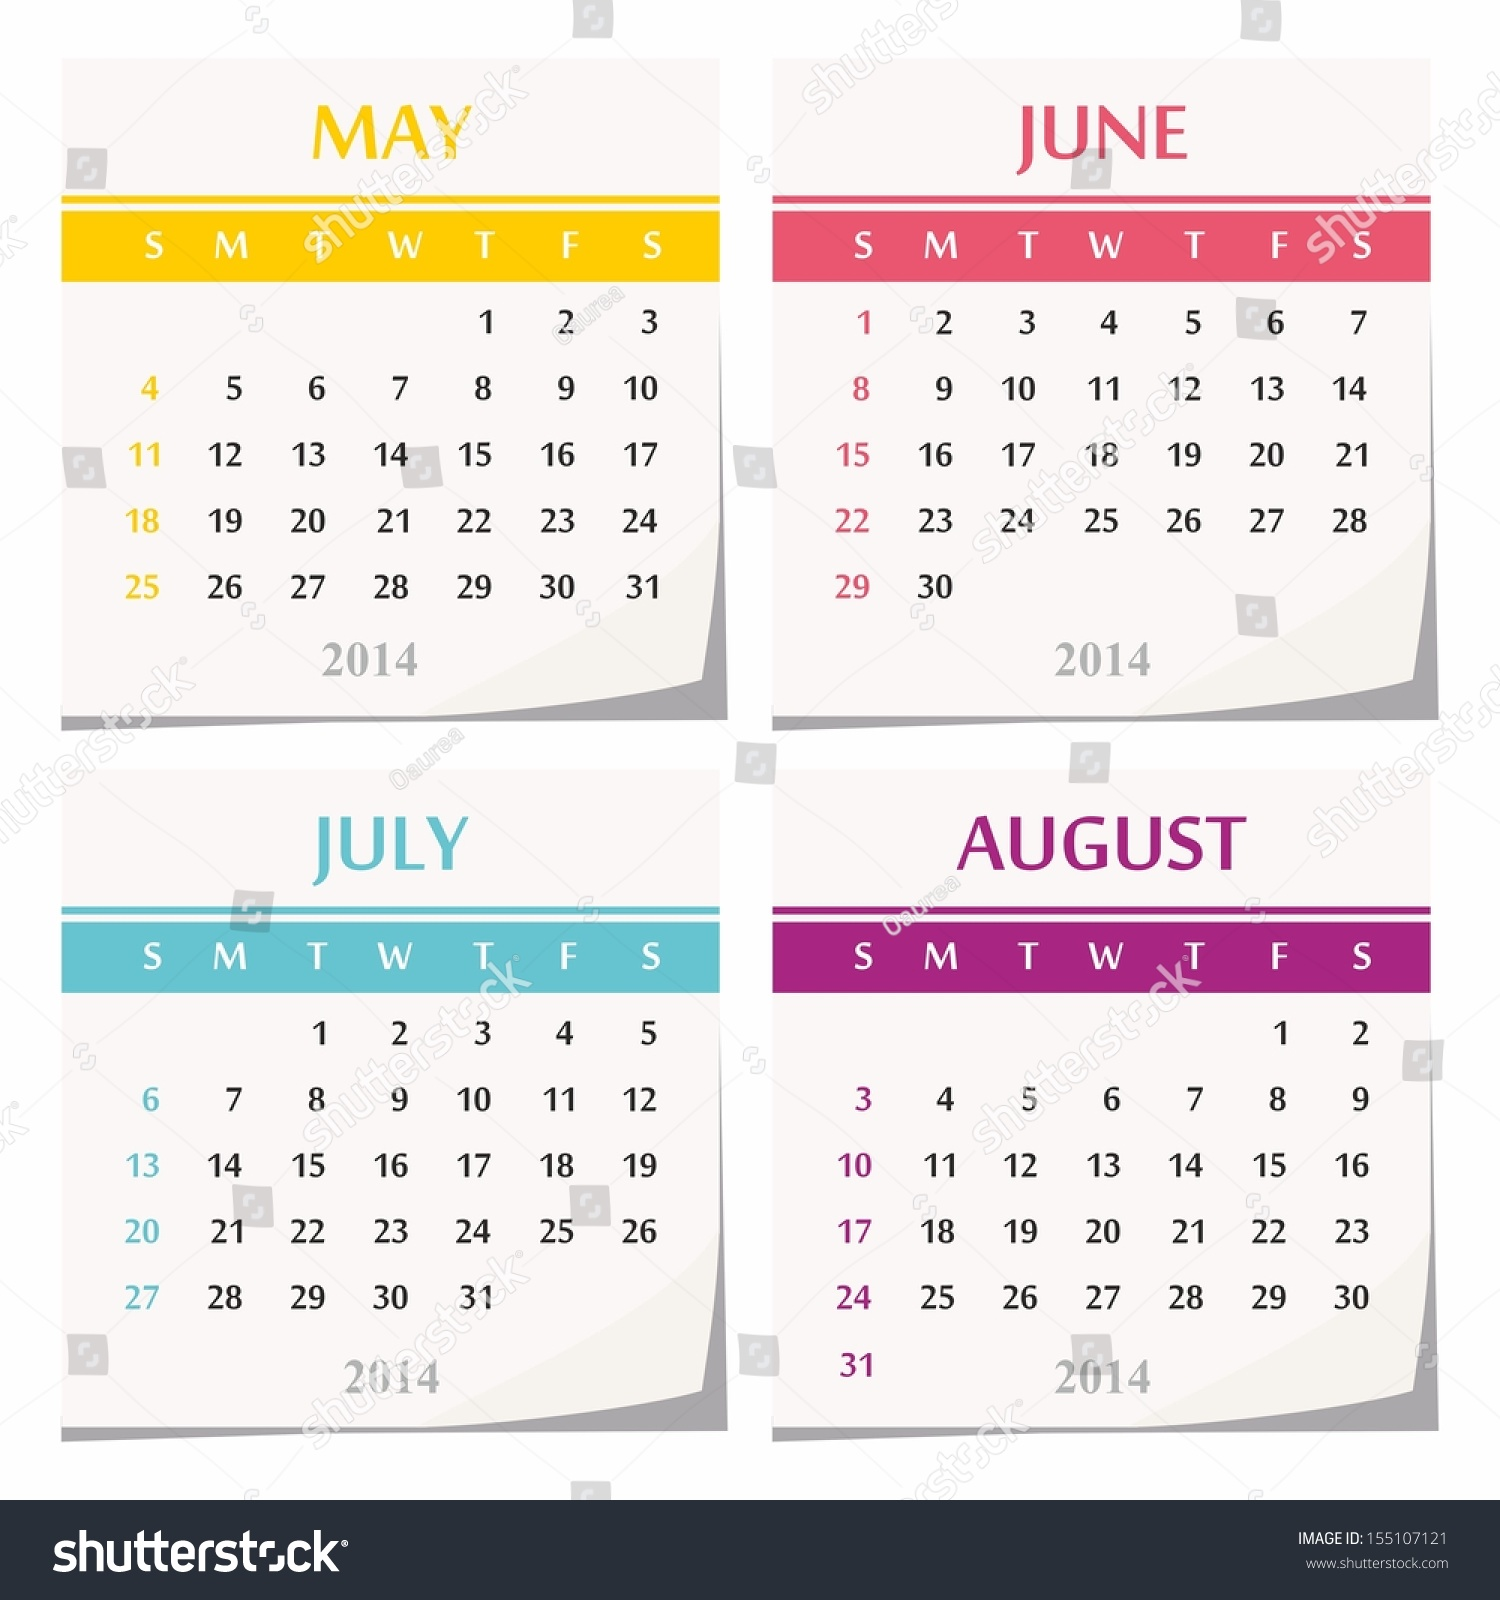 Calendar May June July August : Calendar design set of four months may june july